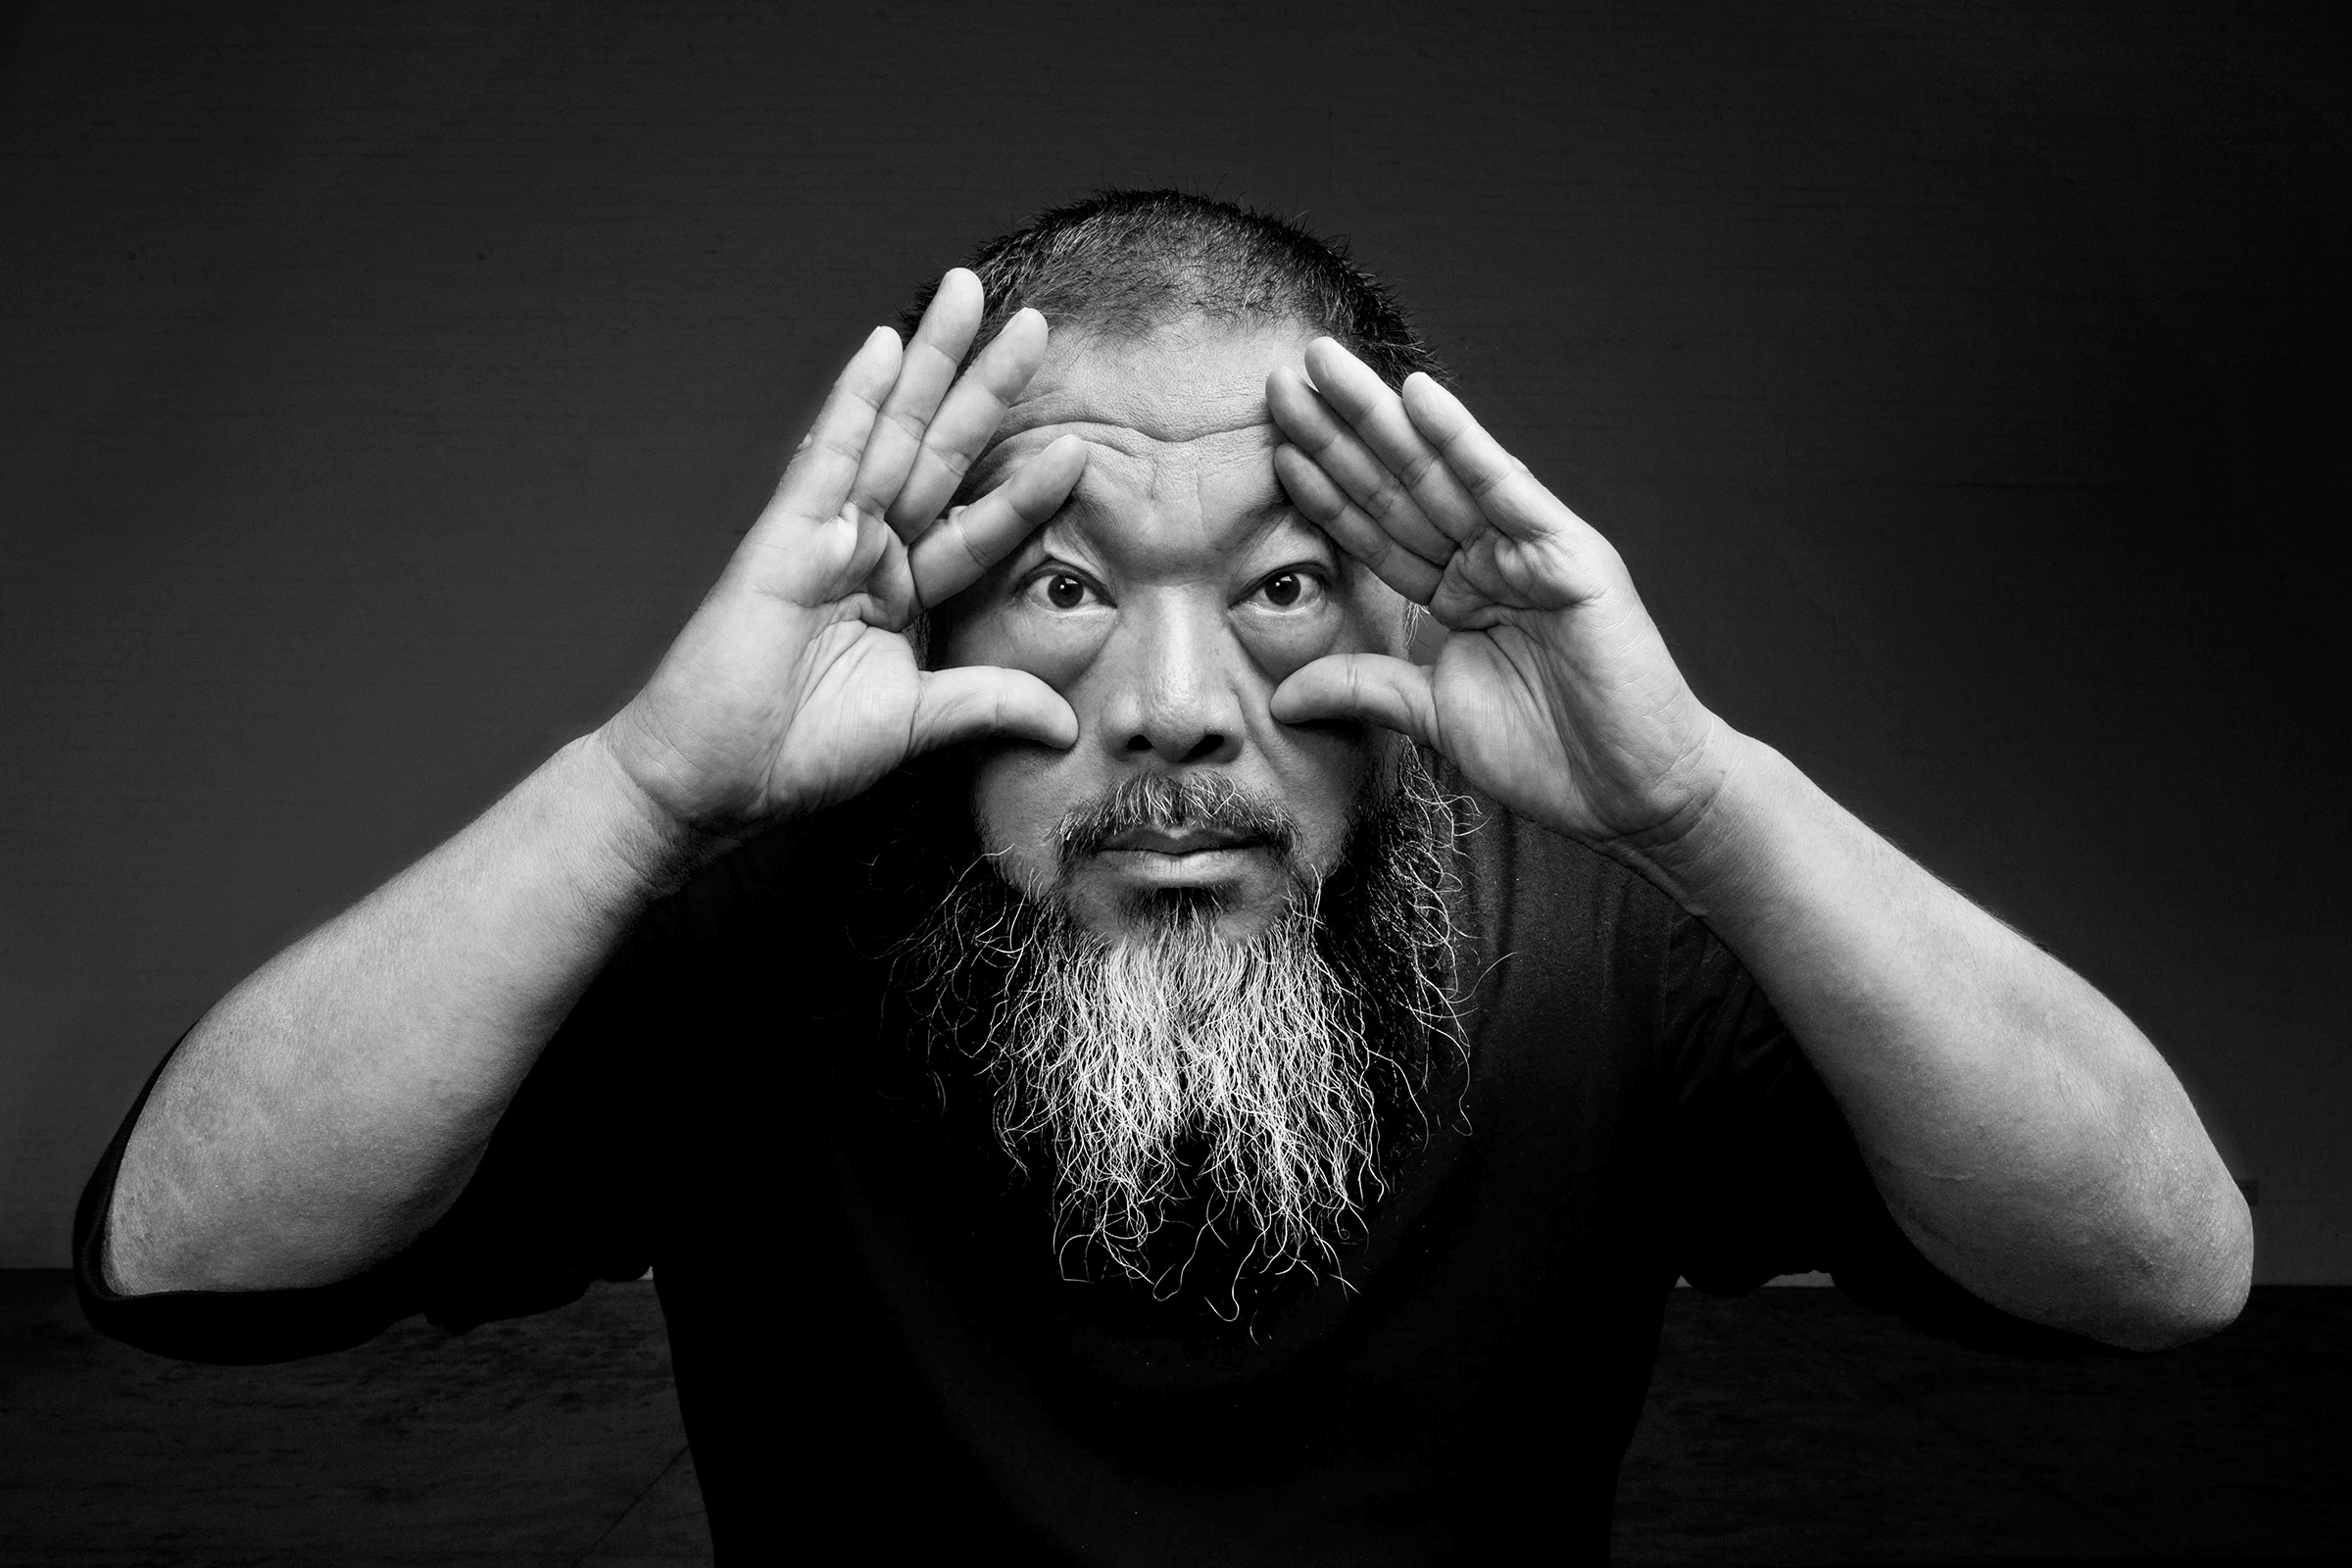 Photo of artists Ai Weiwei peering through his hands